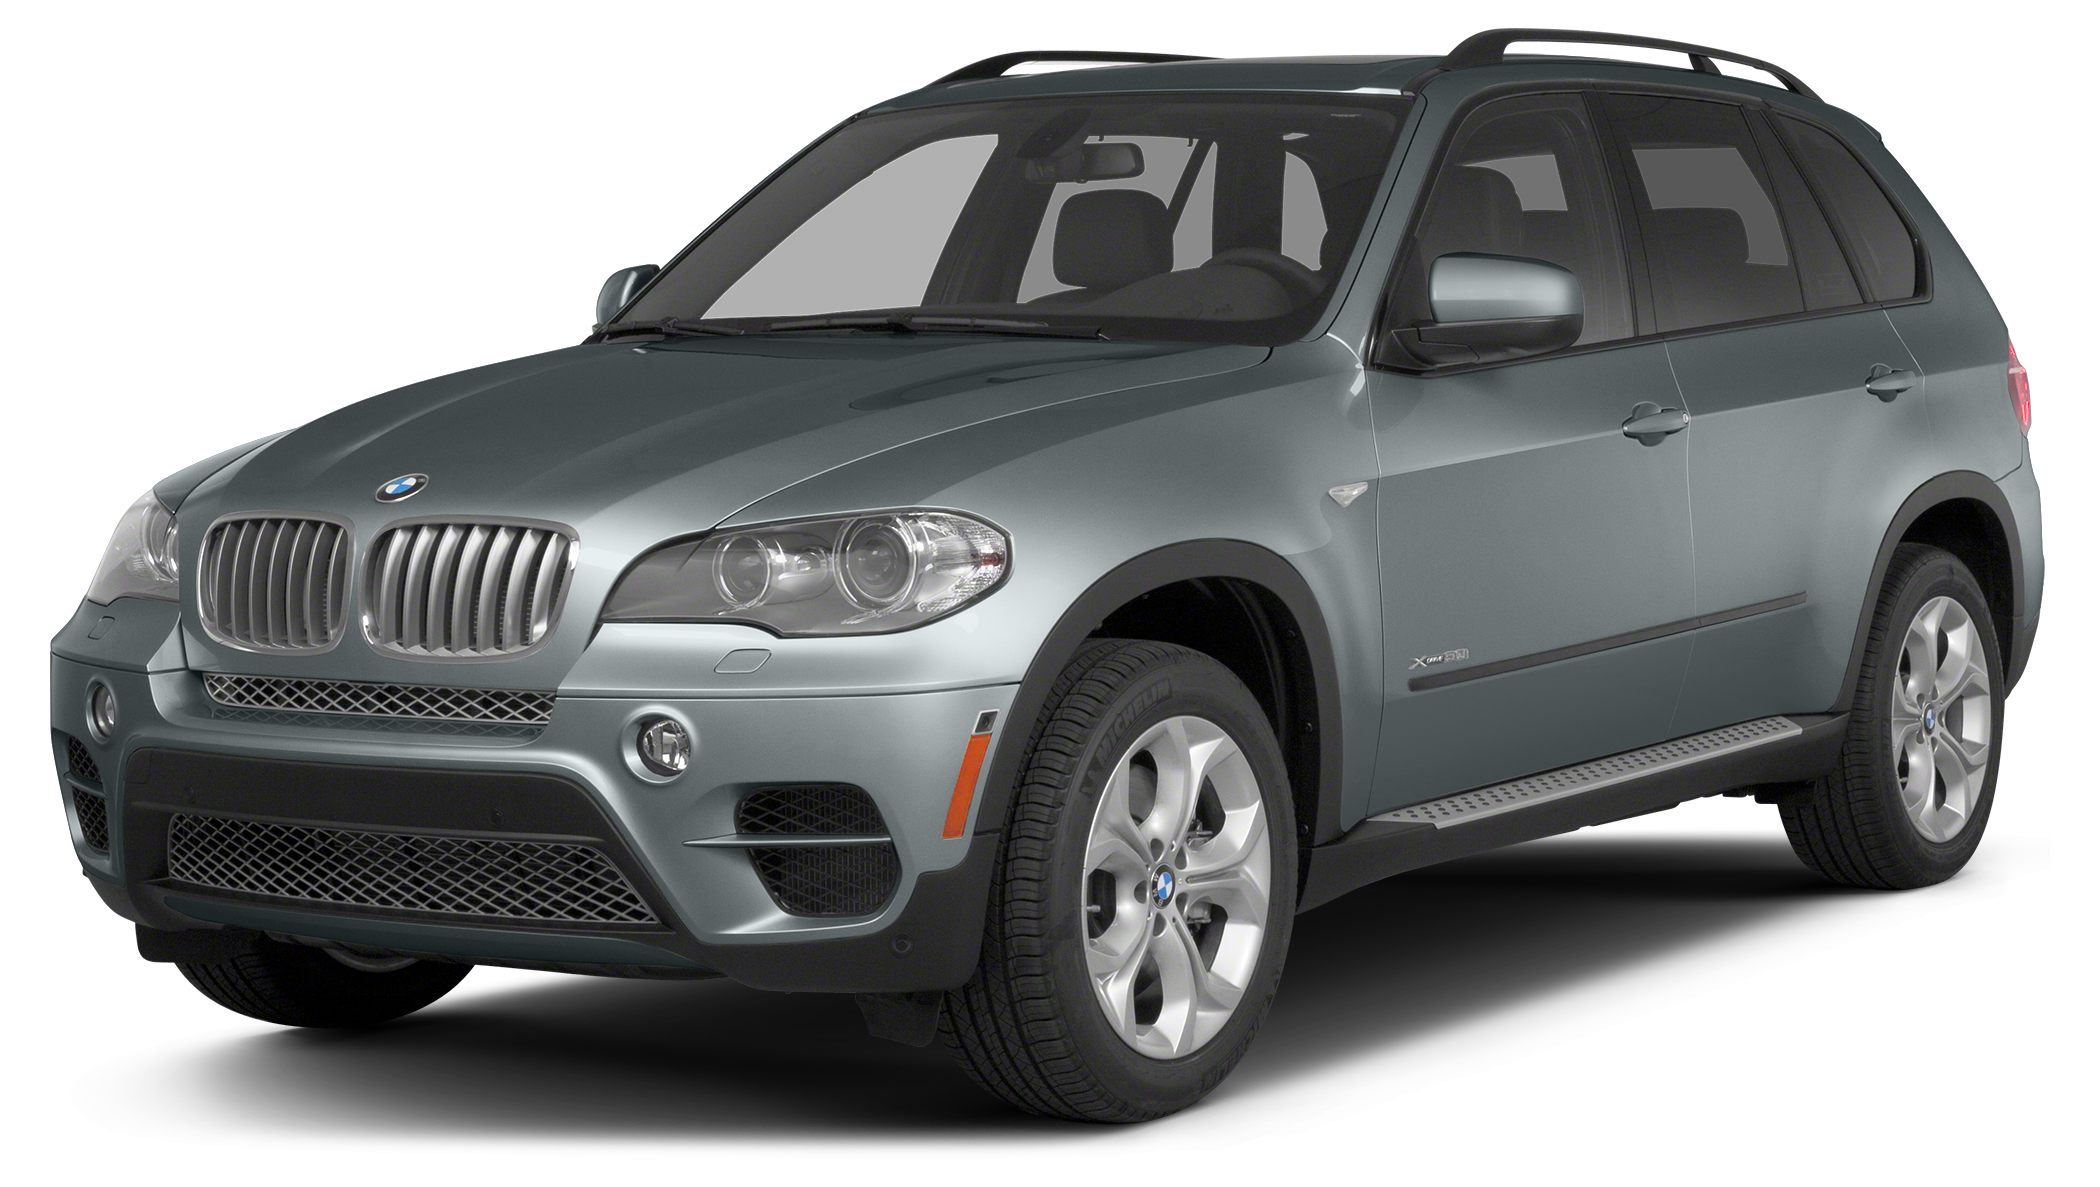 2013 BMW X5 xDrive35i XDrive35i trim ONLY 27898 Miles JUST REPRICED FROM 36988 iPodMP3 Inpu